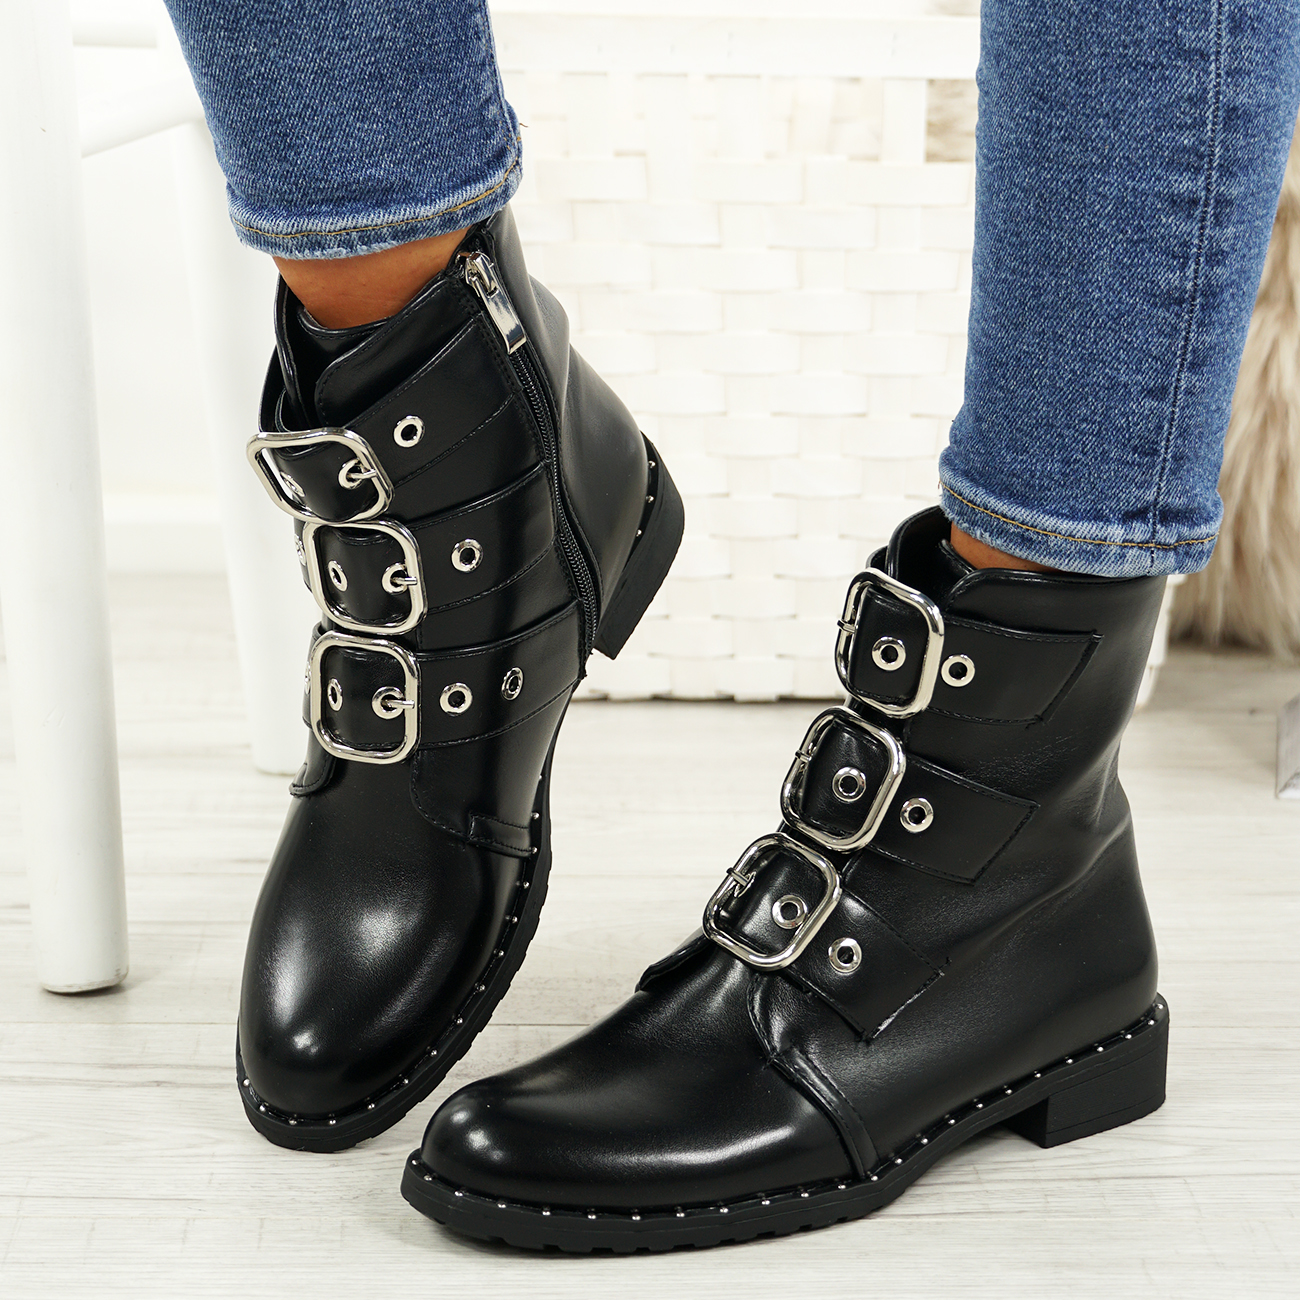 LADIES-WOMENS-BIKER-ANKLE-BOOTS-ZIP-STUDDED-LOW-HEEL-COMFY-SHOES-SIZES thumbnail 7